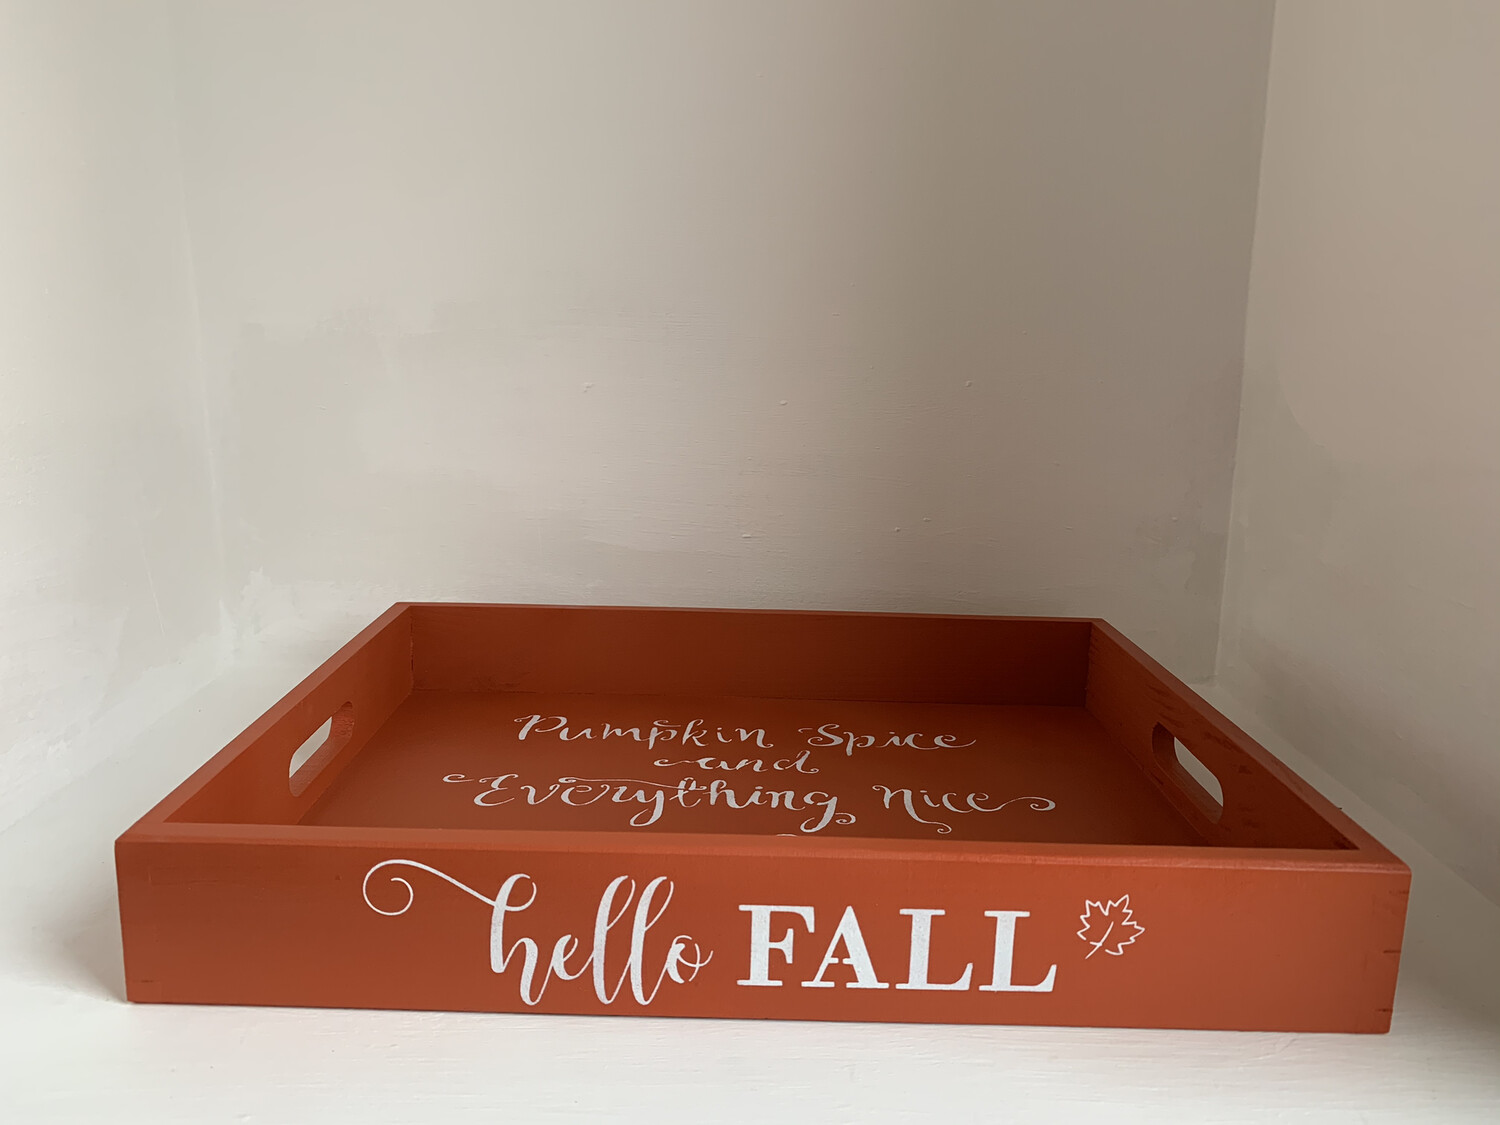 Hello Fall Autumn Pumpkin Spice Thanksgiving decorative shabby chic wooden tray Free UK P&P